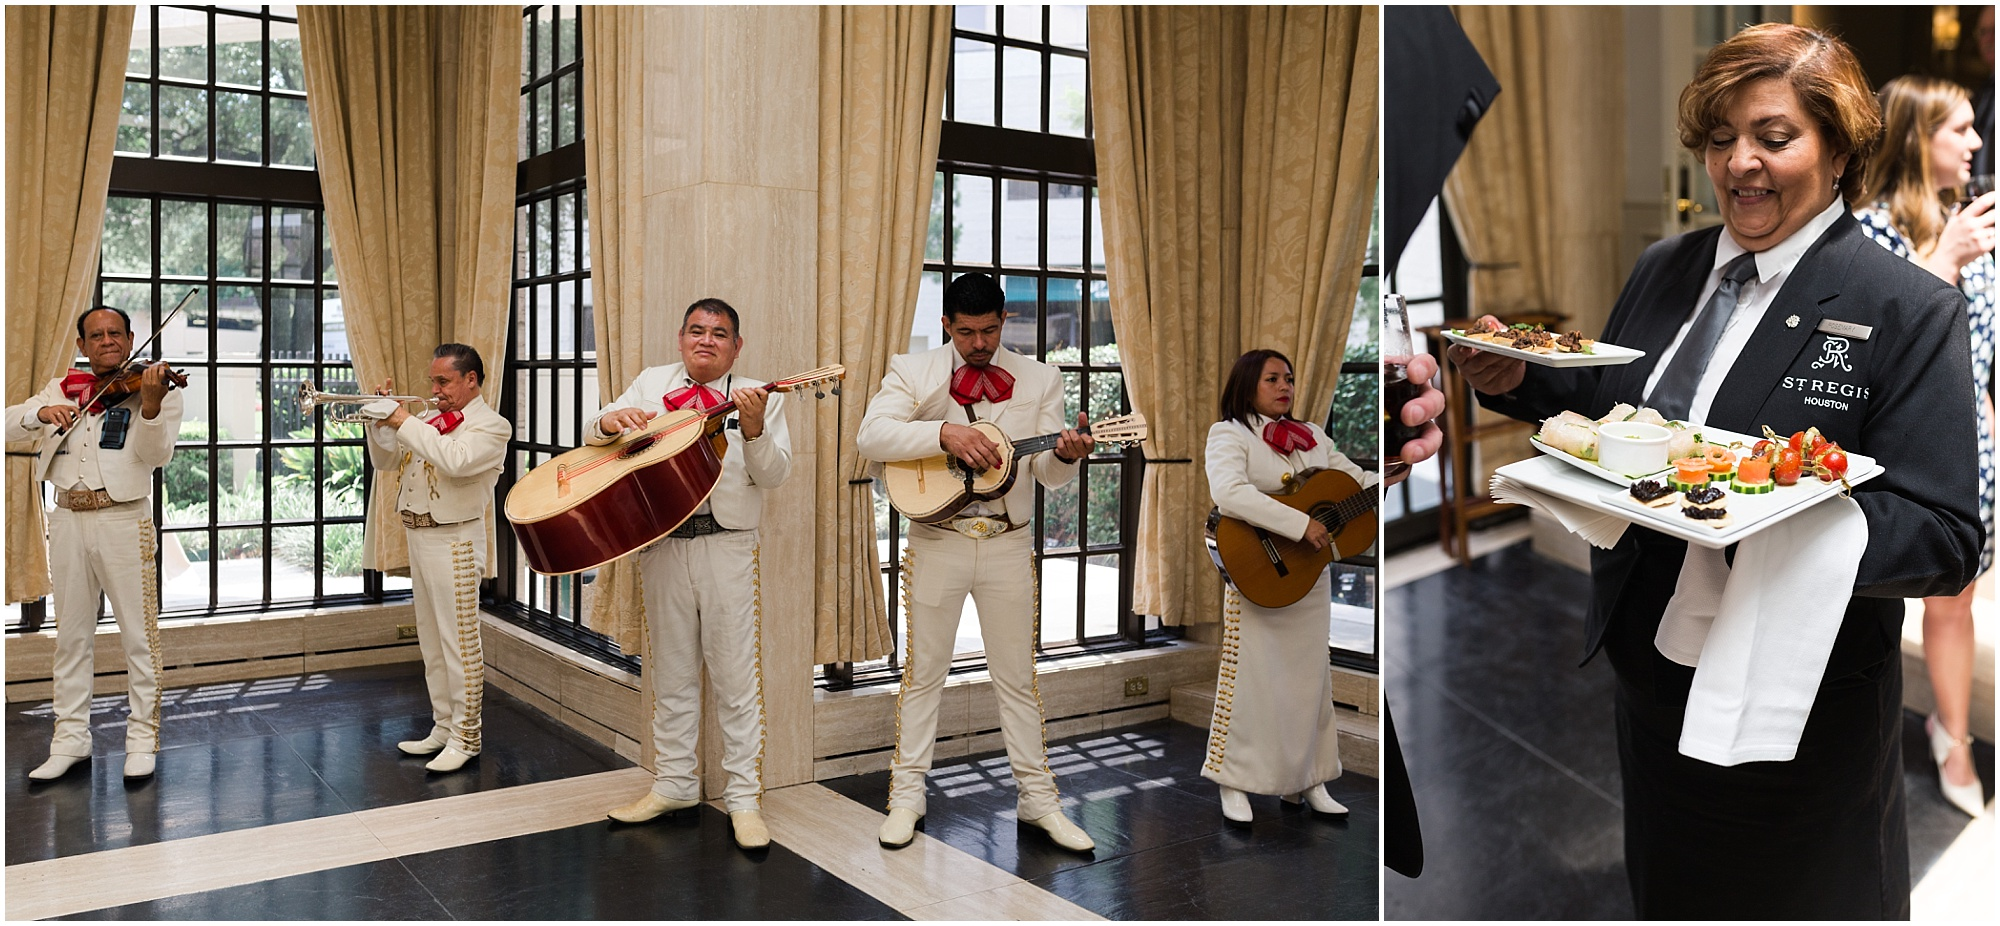 mariachi bane at wedding